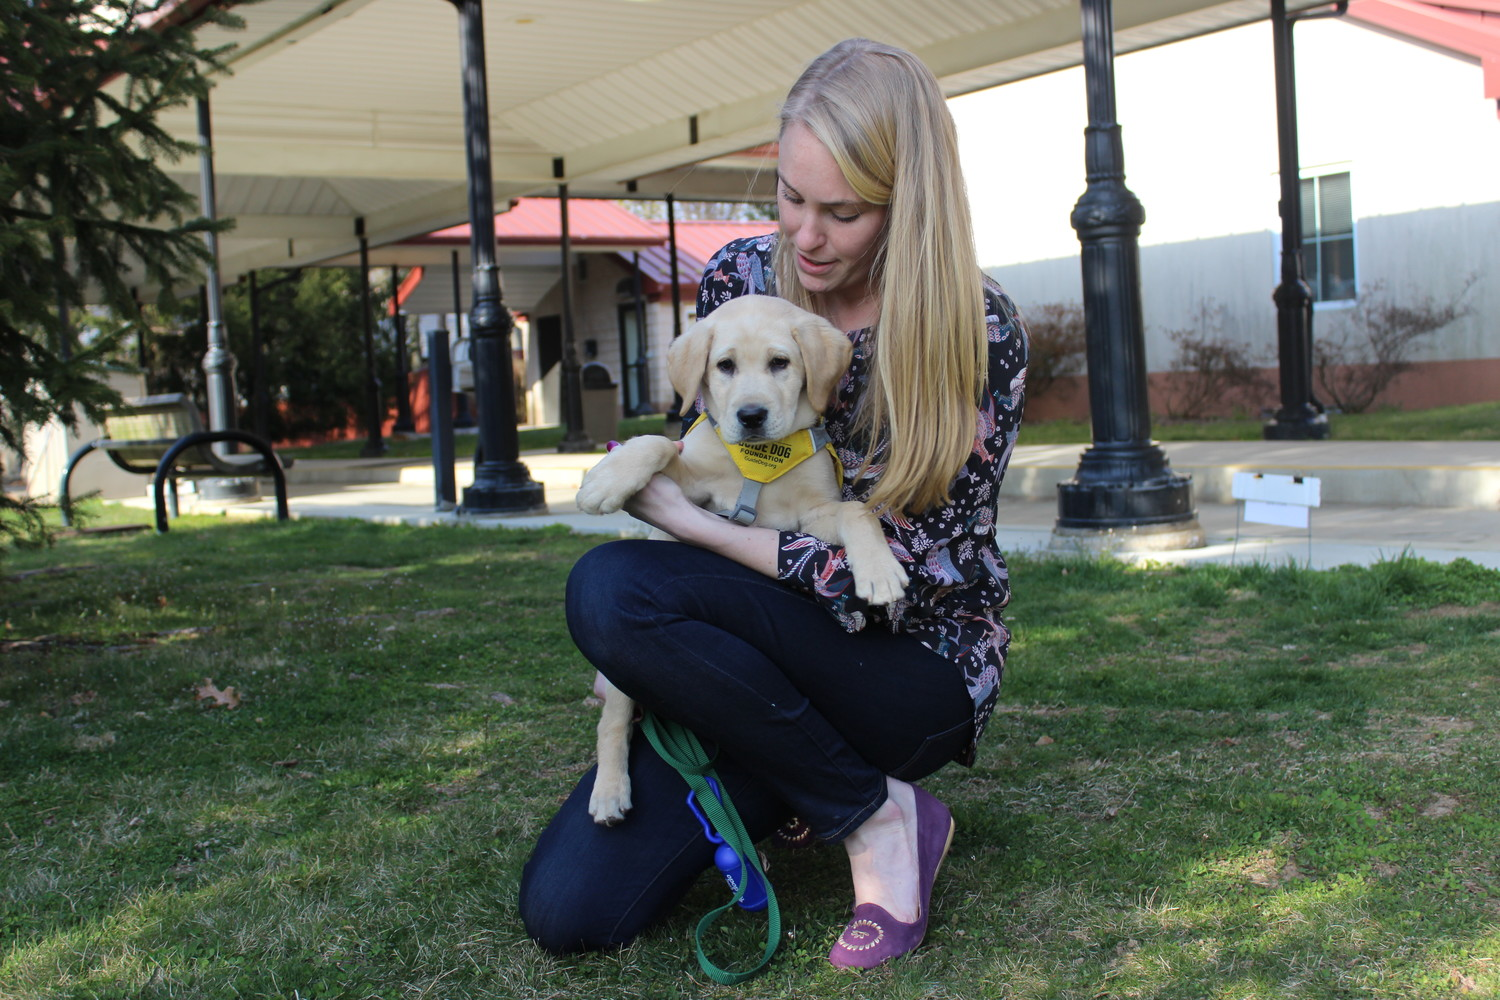 Allison Storck is one of the organization's puppy trainers. She is pictured with her dog Minnie.